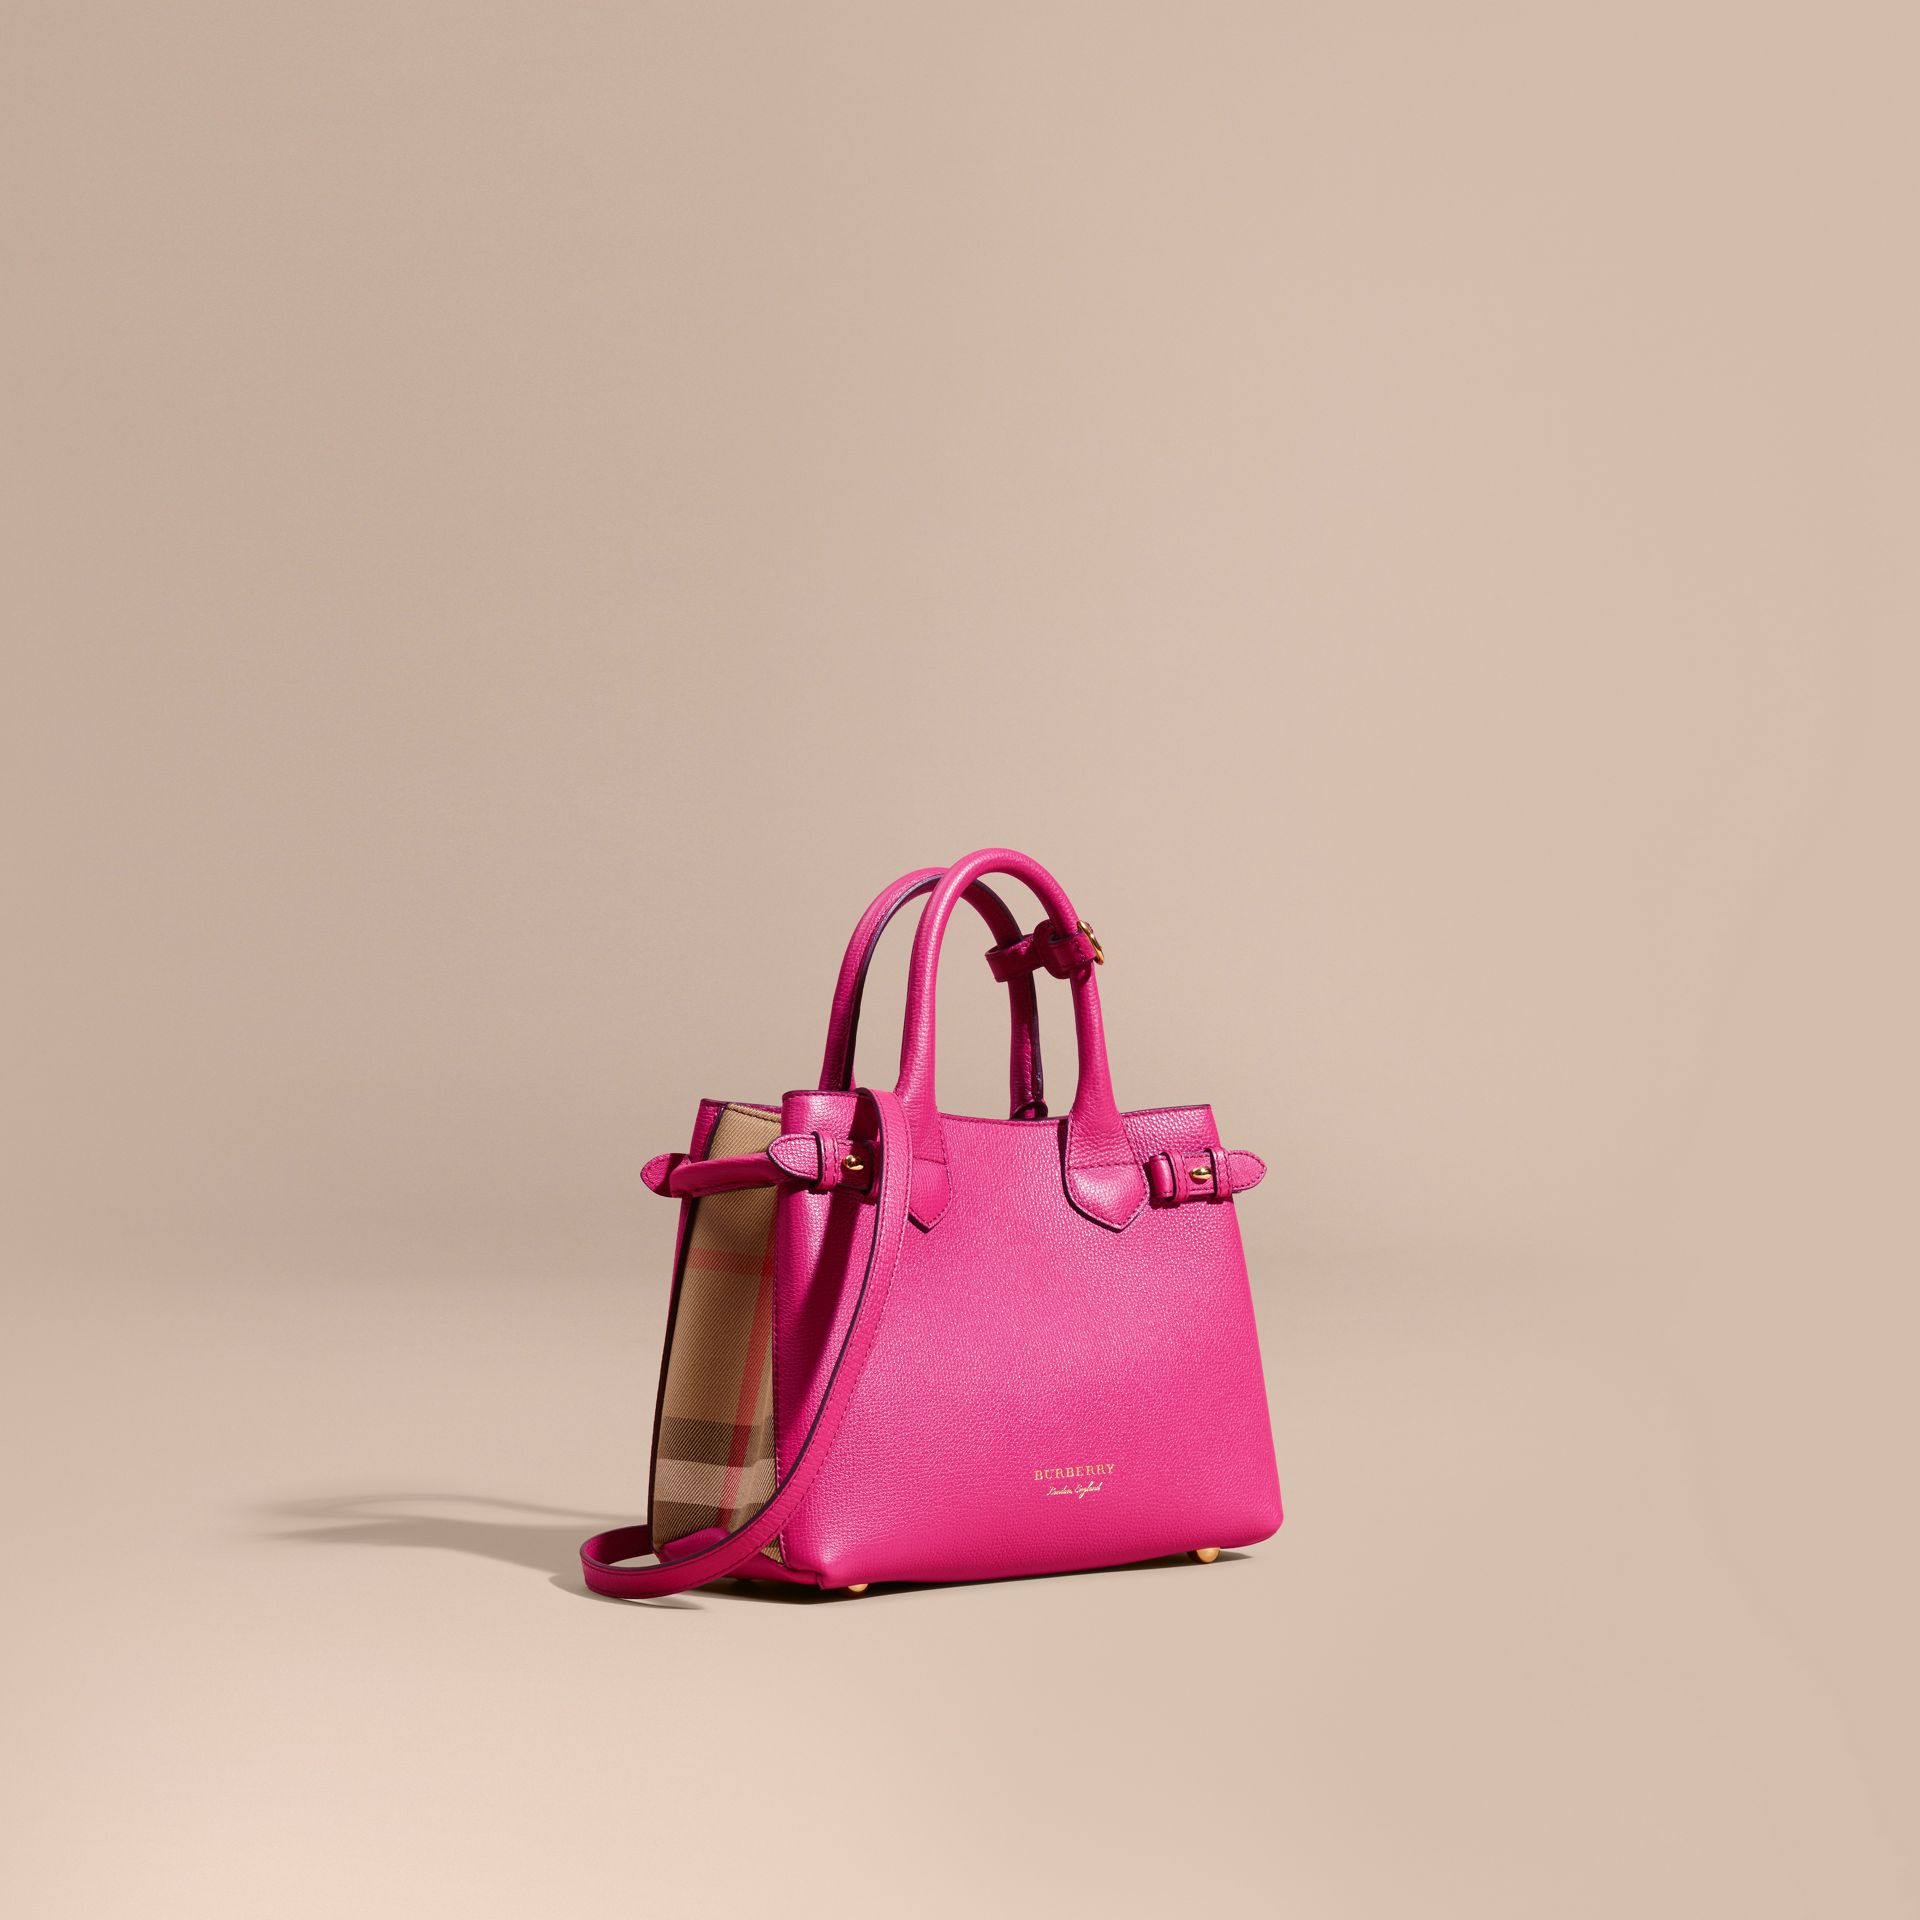 Fuchsia vif Petit sac The Banner en cuir et coton House check Fuchsia Vif - photo de la galerie 1